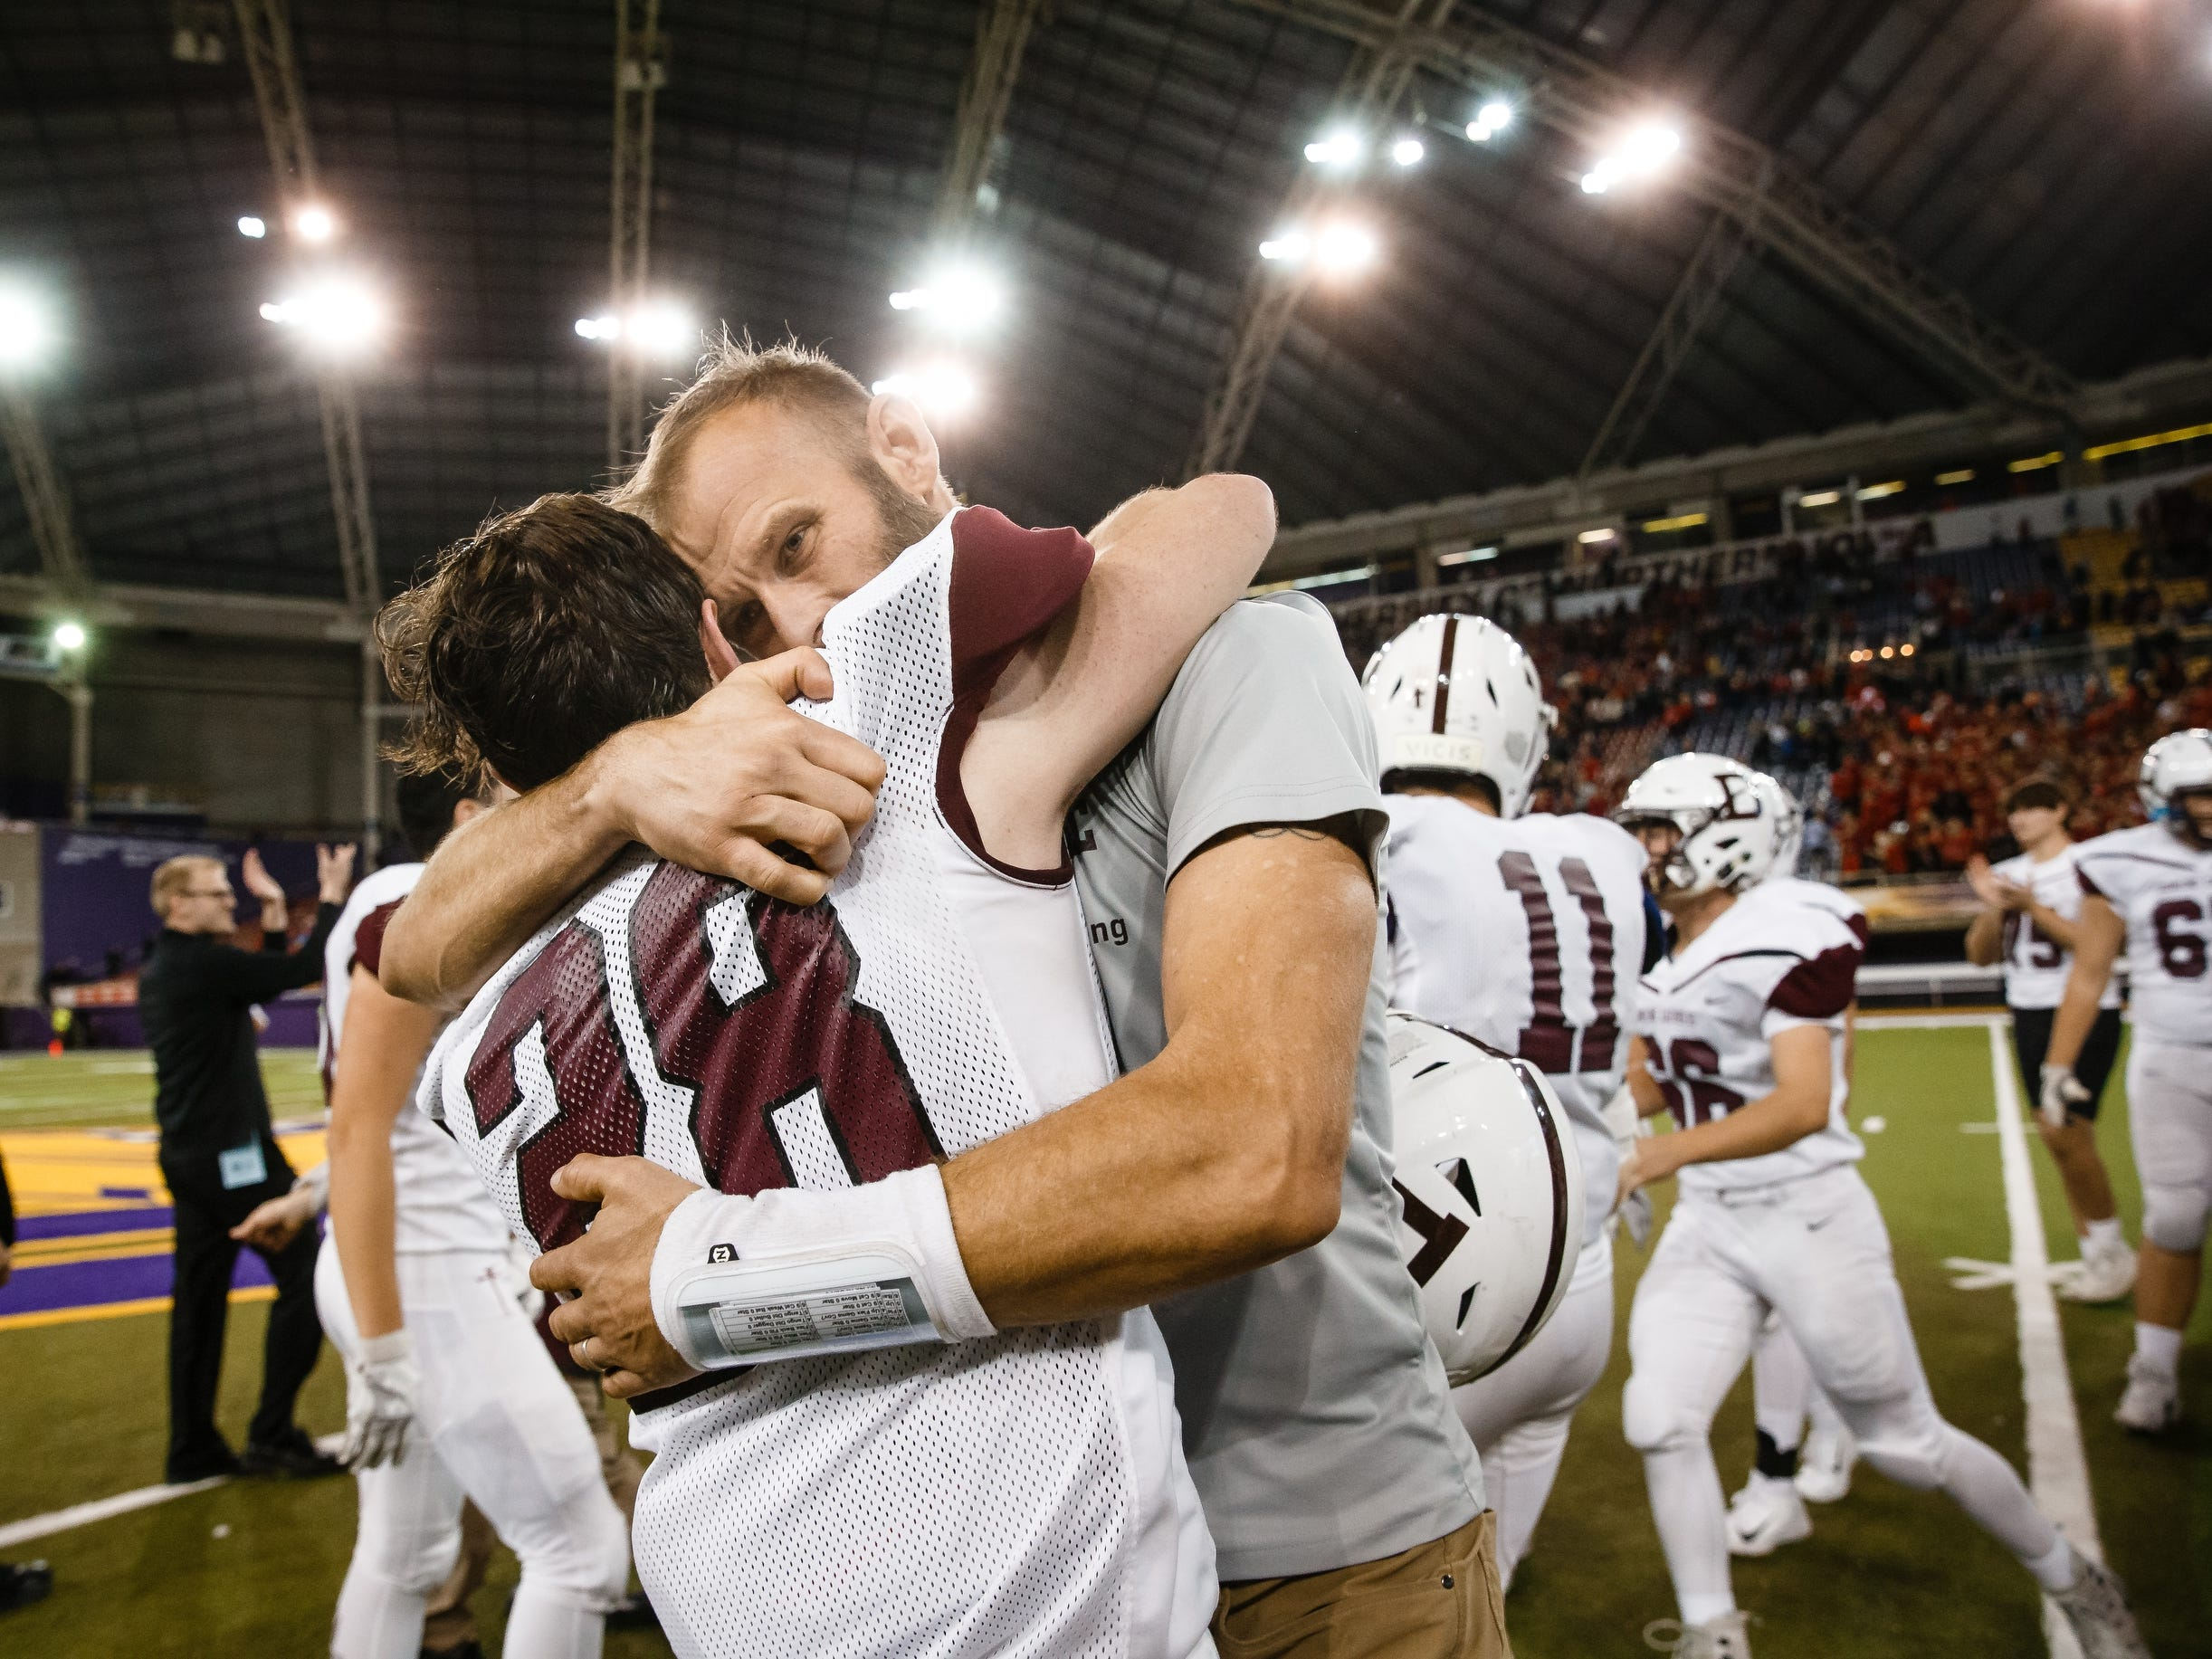 Dowling Catholic players and coaches celebrate their 22-16 victory over Cedar Falls to win the class 4A state championship football game on Friday, Nov. 16, 2018, in Cedar Falls.